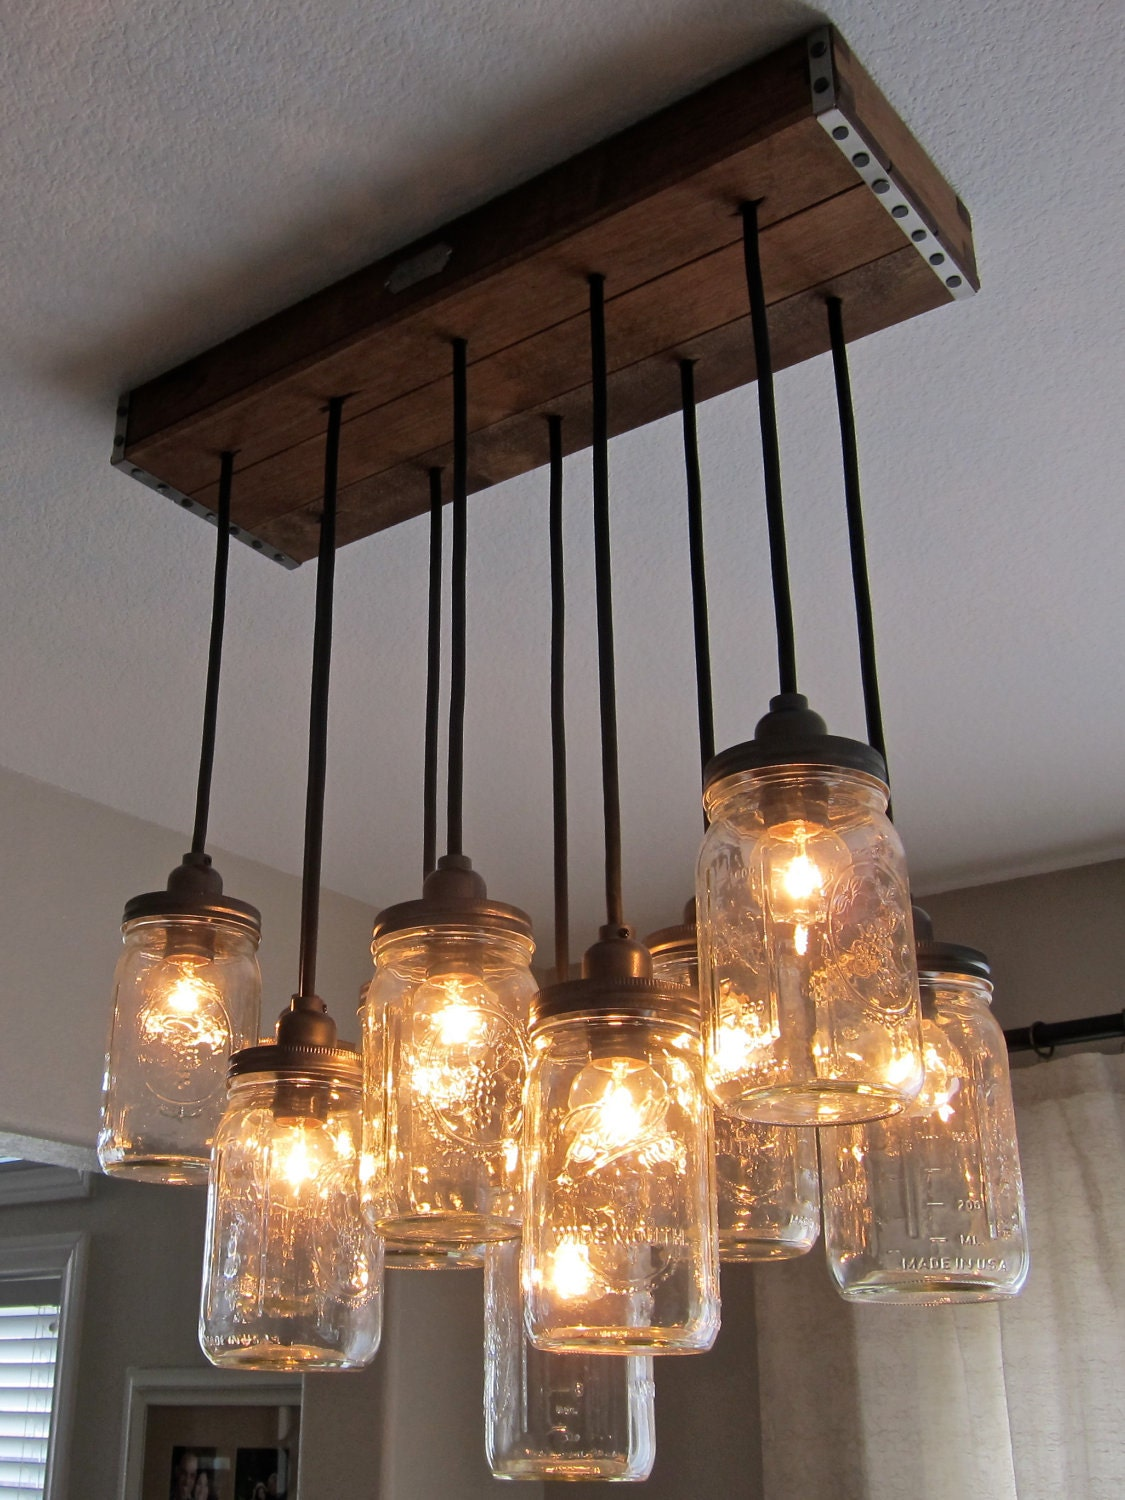 Dining room chandelier replace for pendants - Room chandelier ...